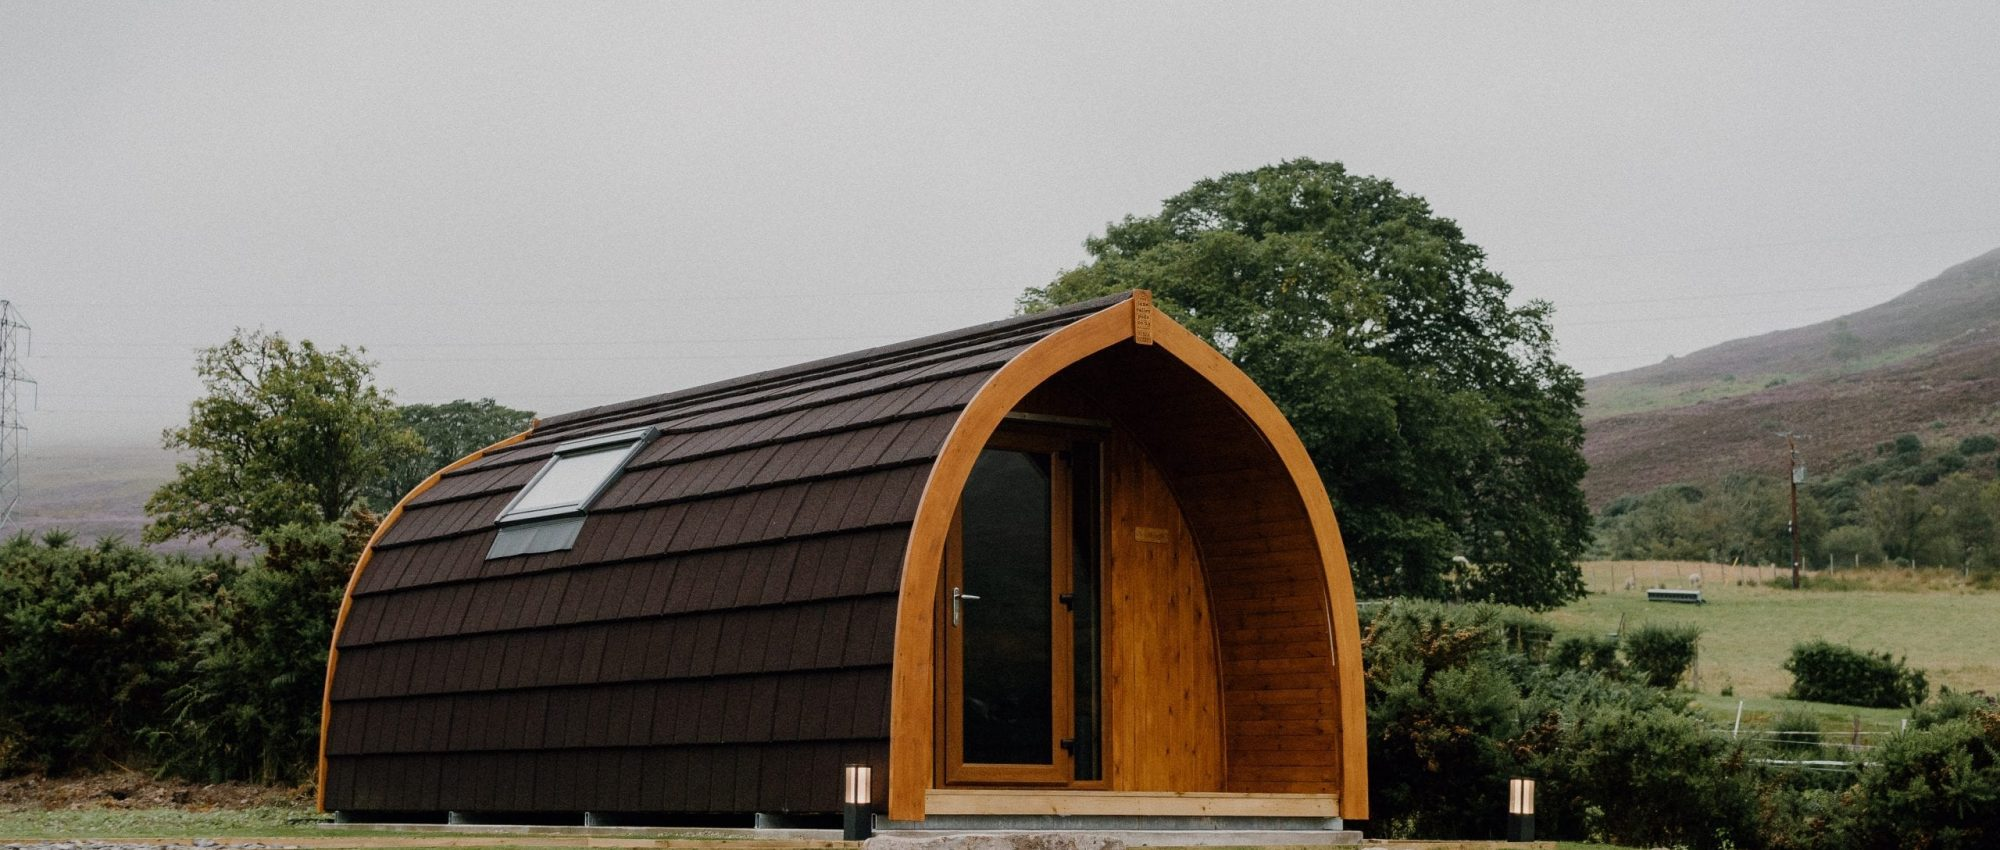 Glamping pod in Brora on overcast day